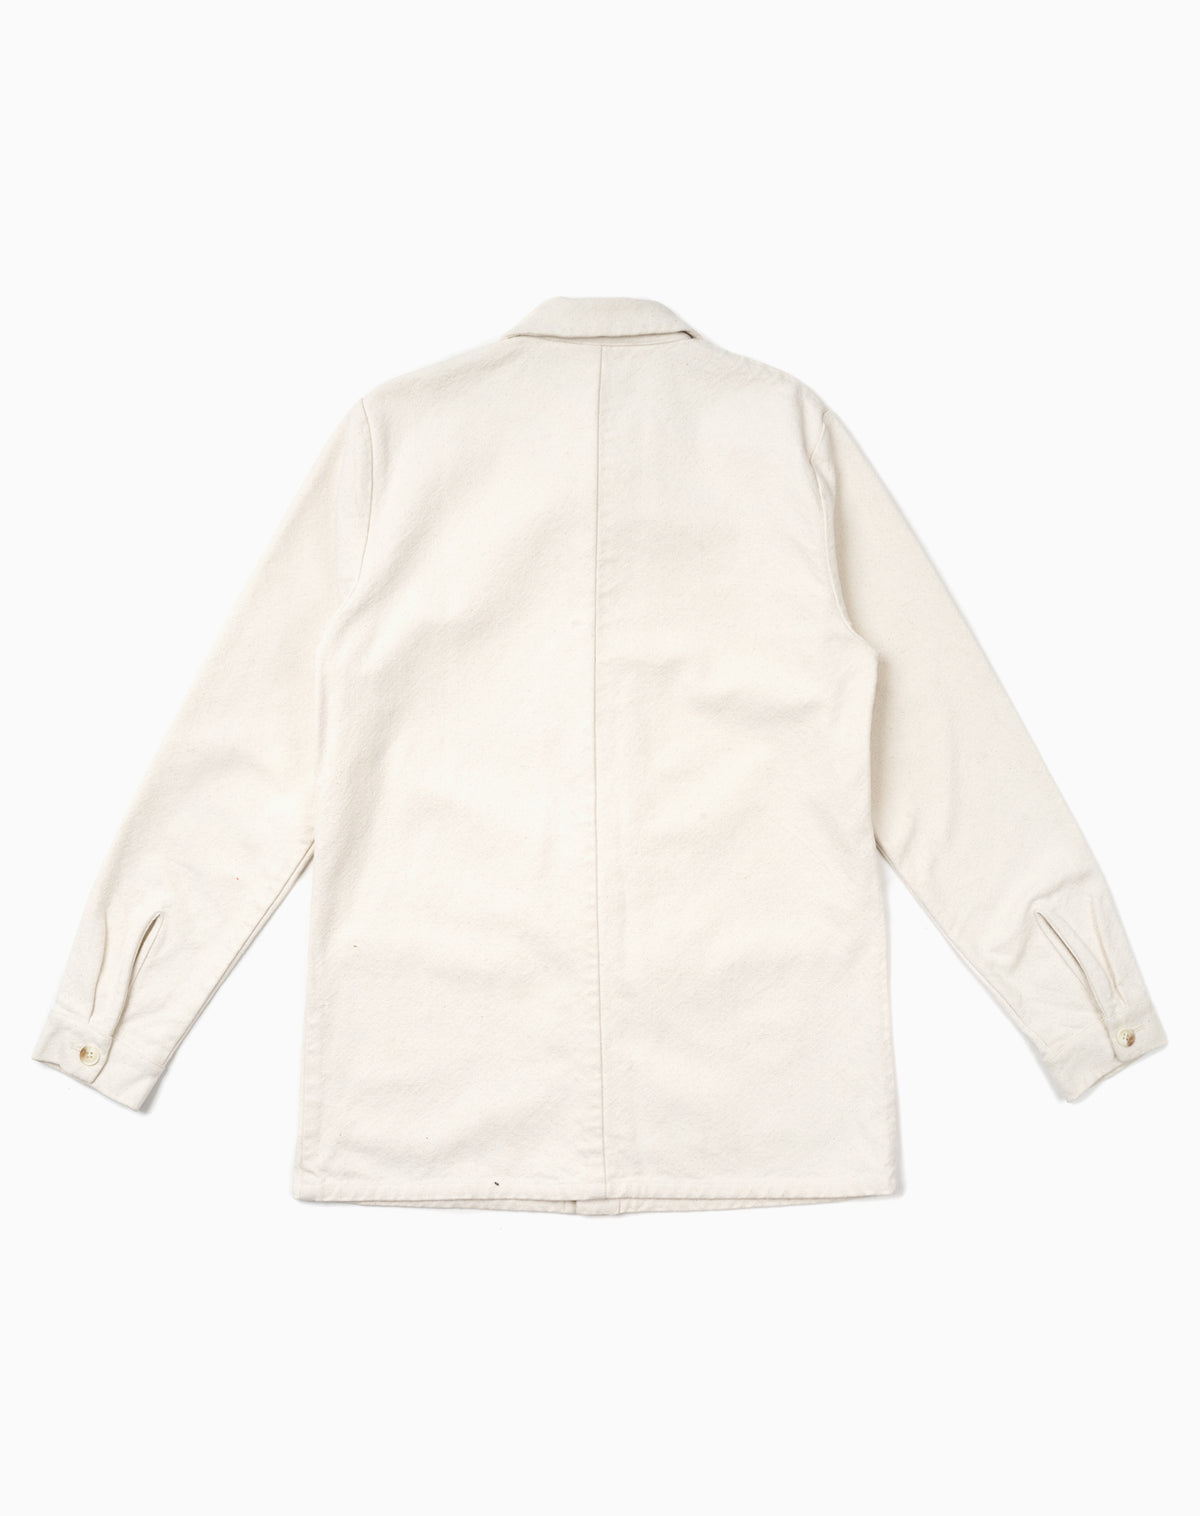 French Workman's Jacket in Off White